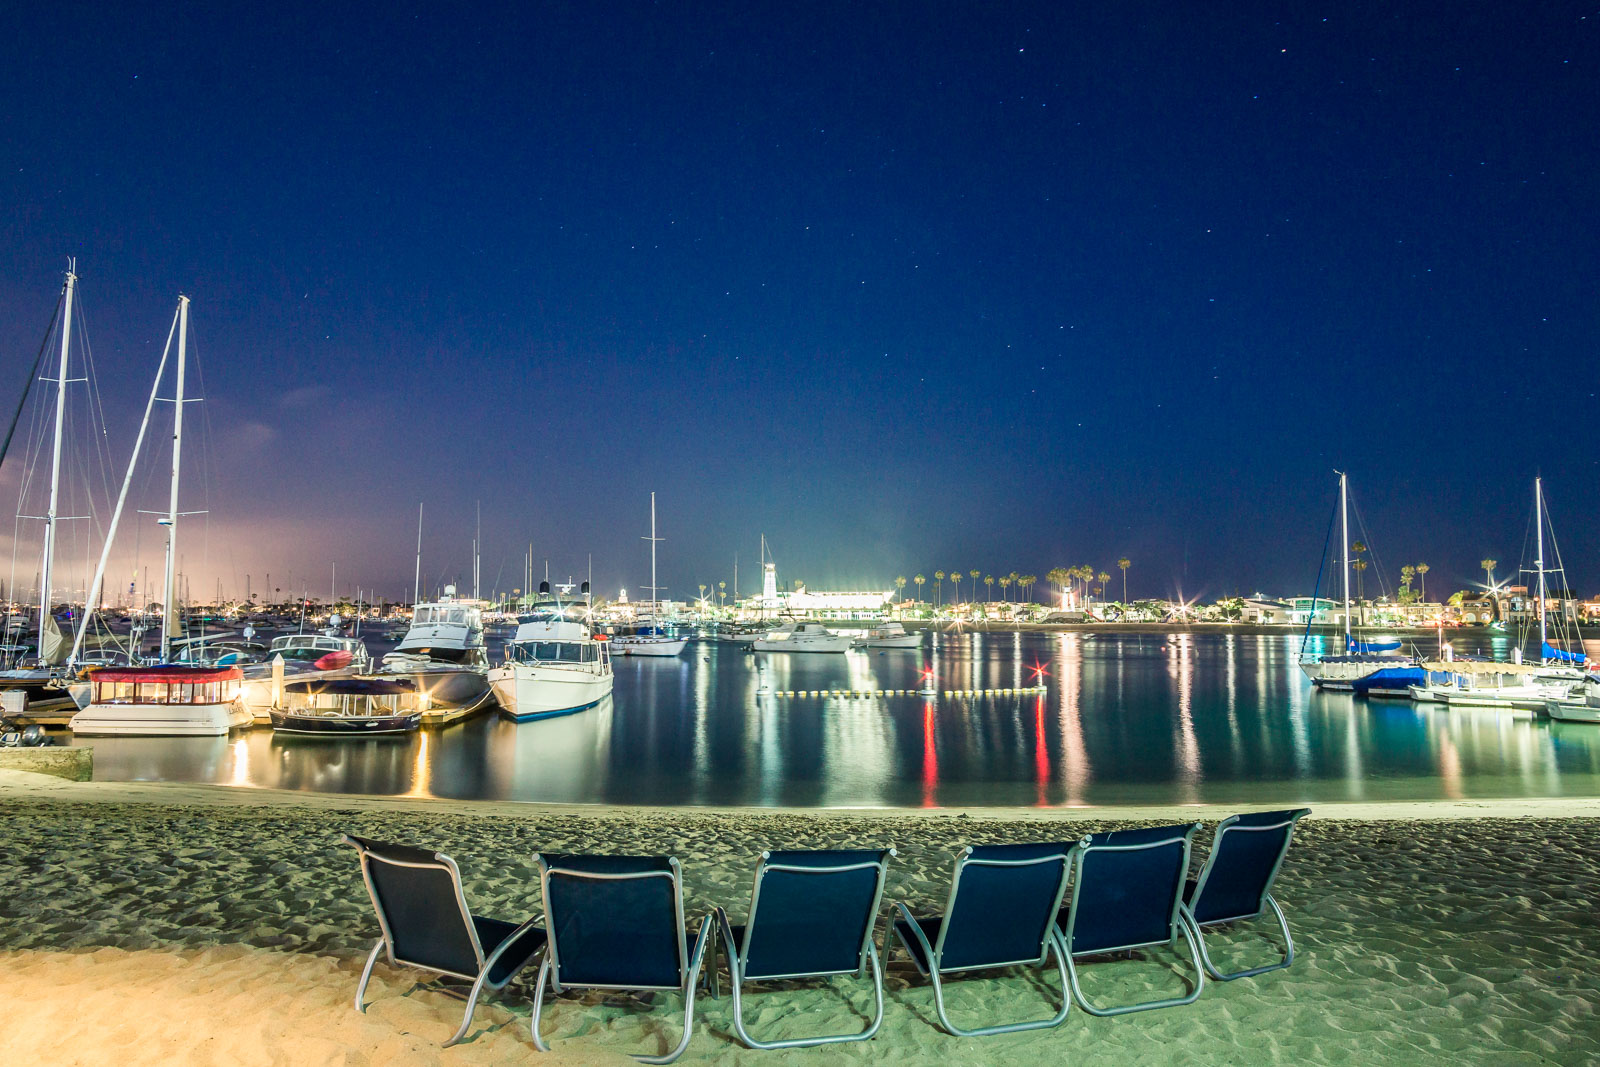 Lido Island beach With a view of the harborIlluminated at night with palm trees and lounge chairs